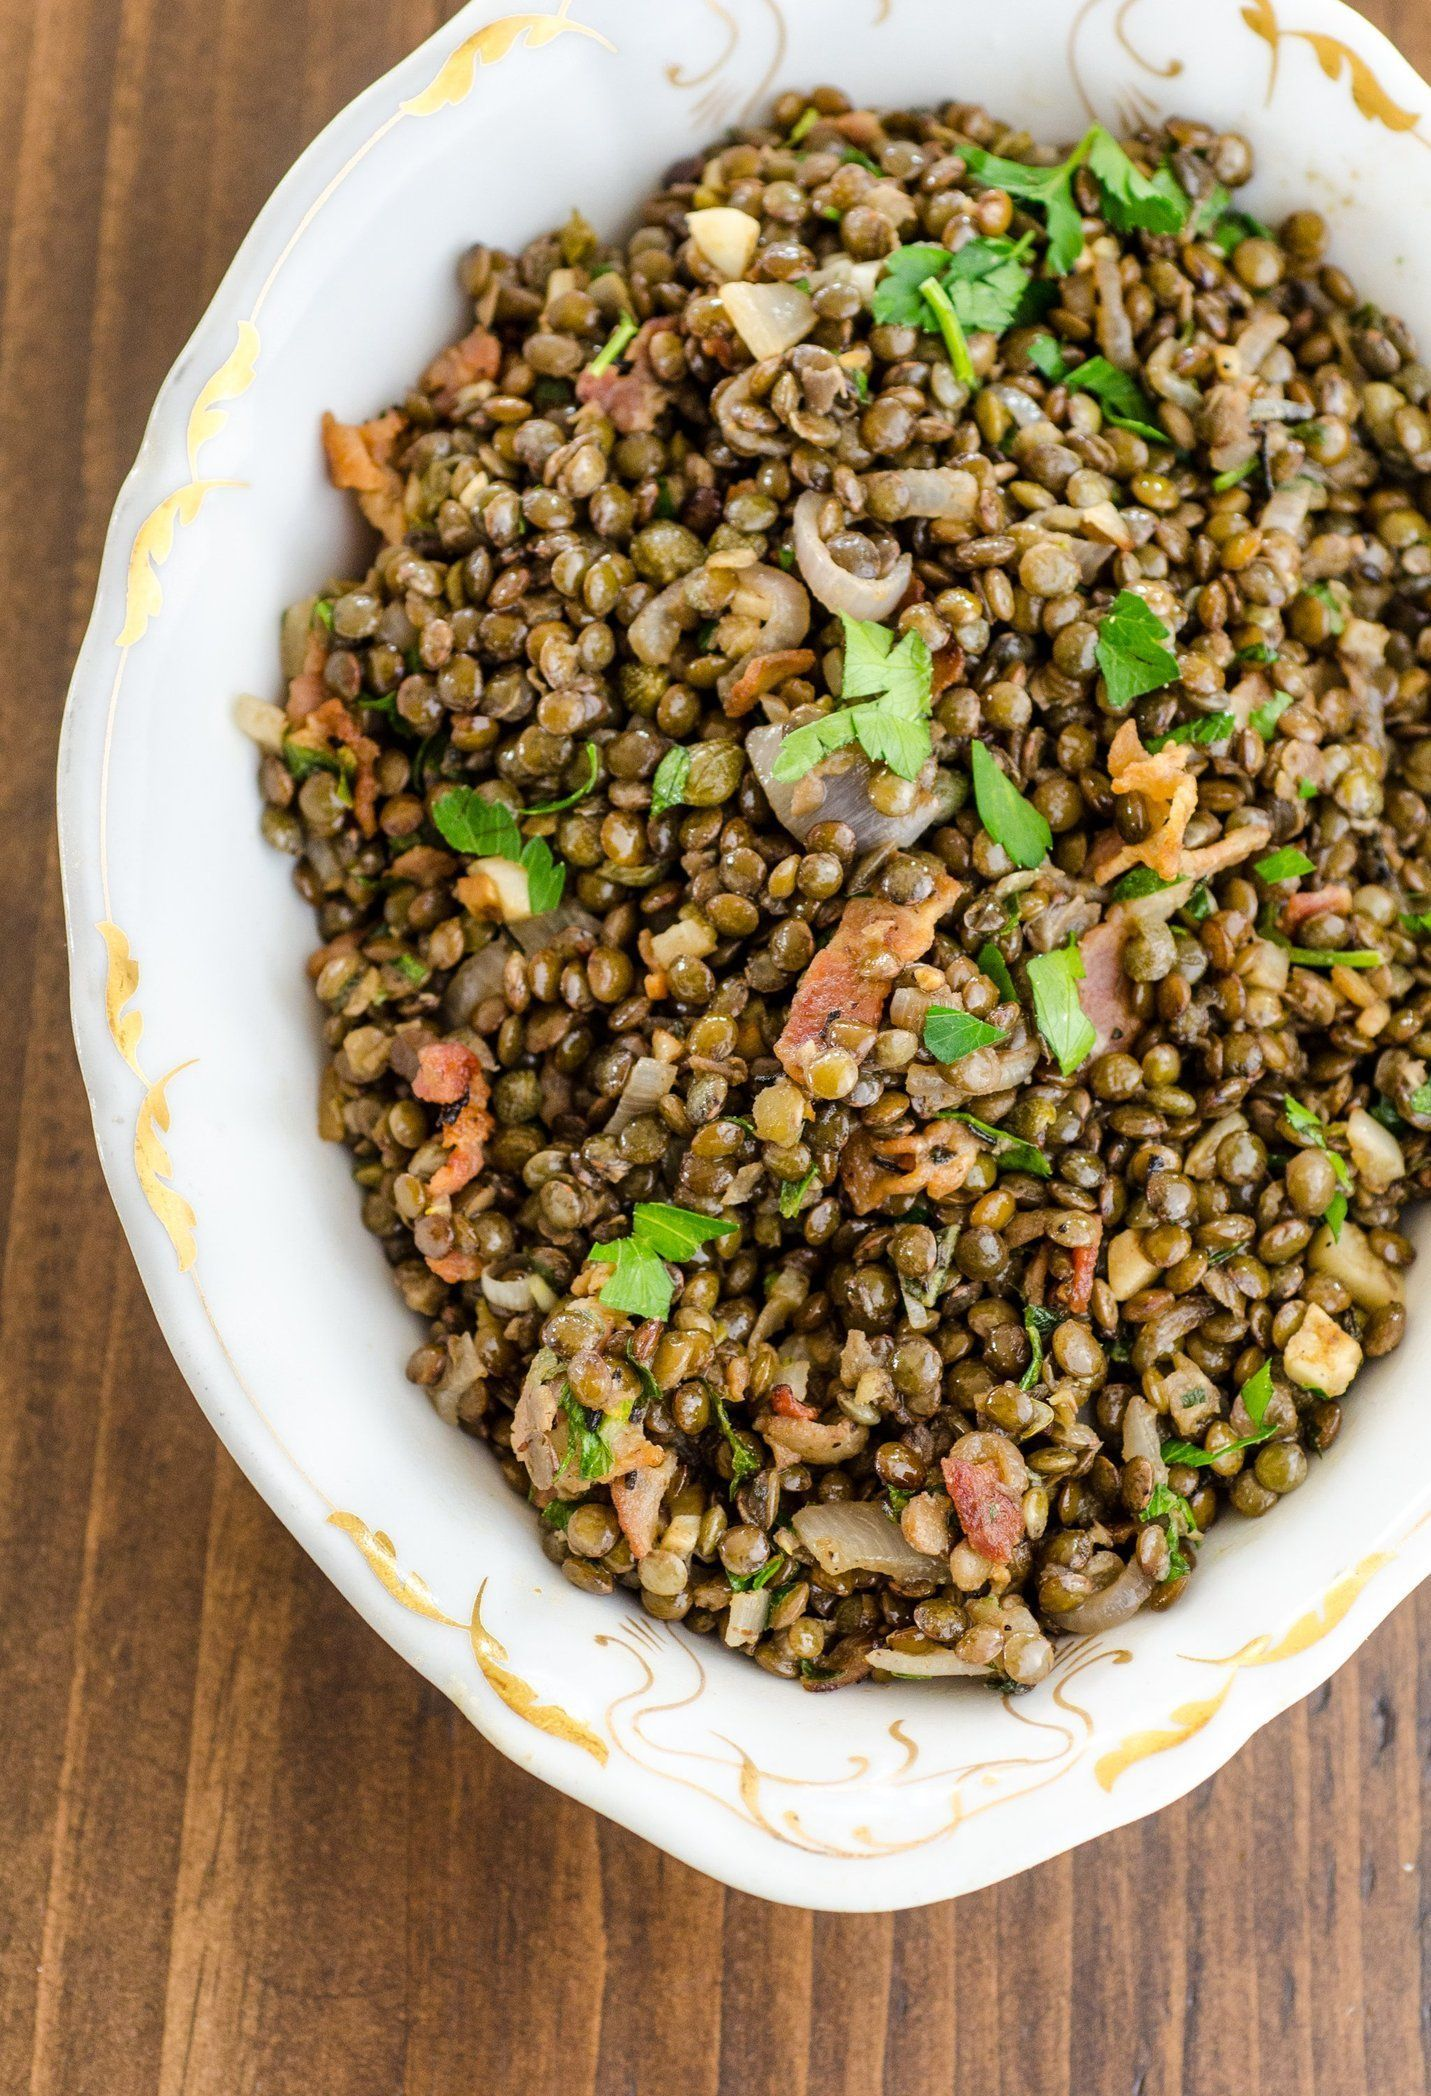 how to cook french lentils for salad